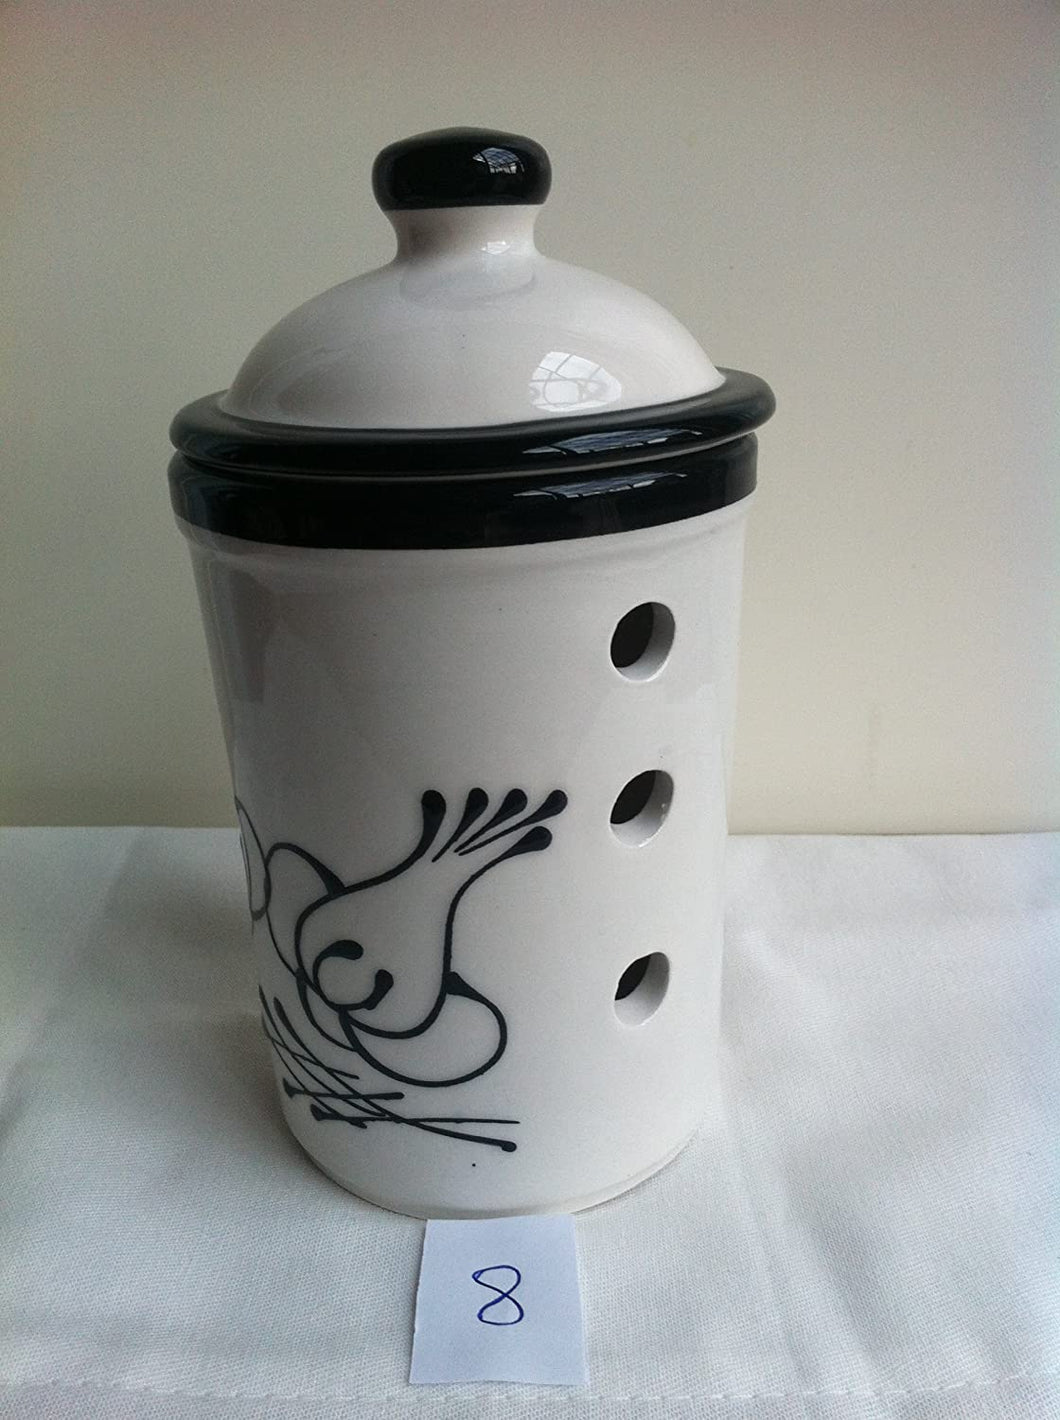 White Pot with Black Garlic Motif Garlic Keeper Pot (8)